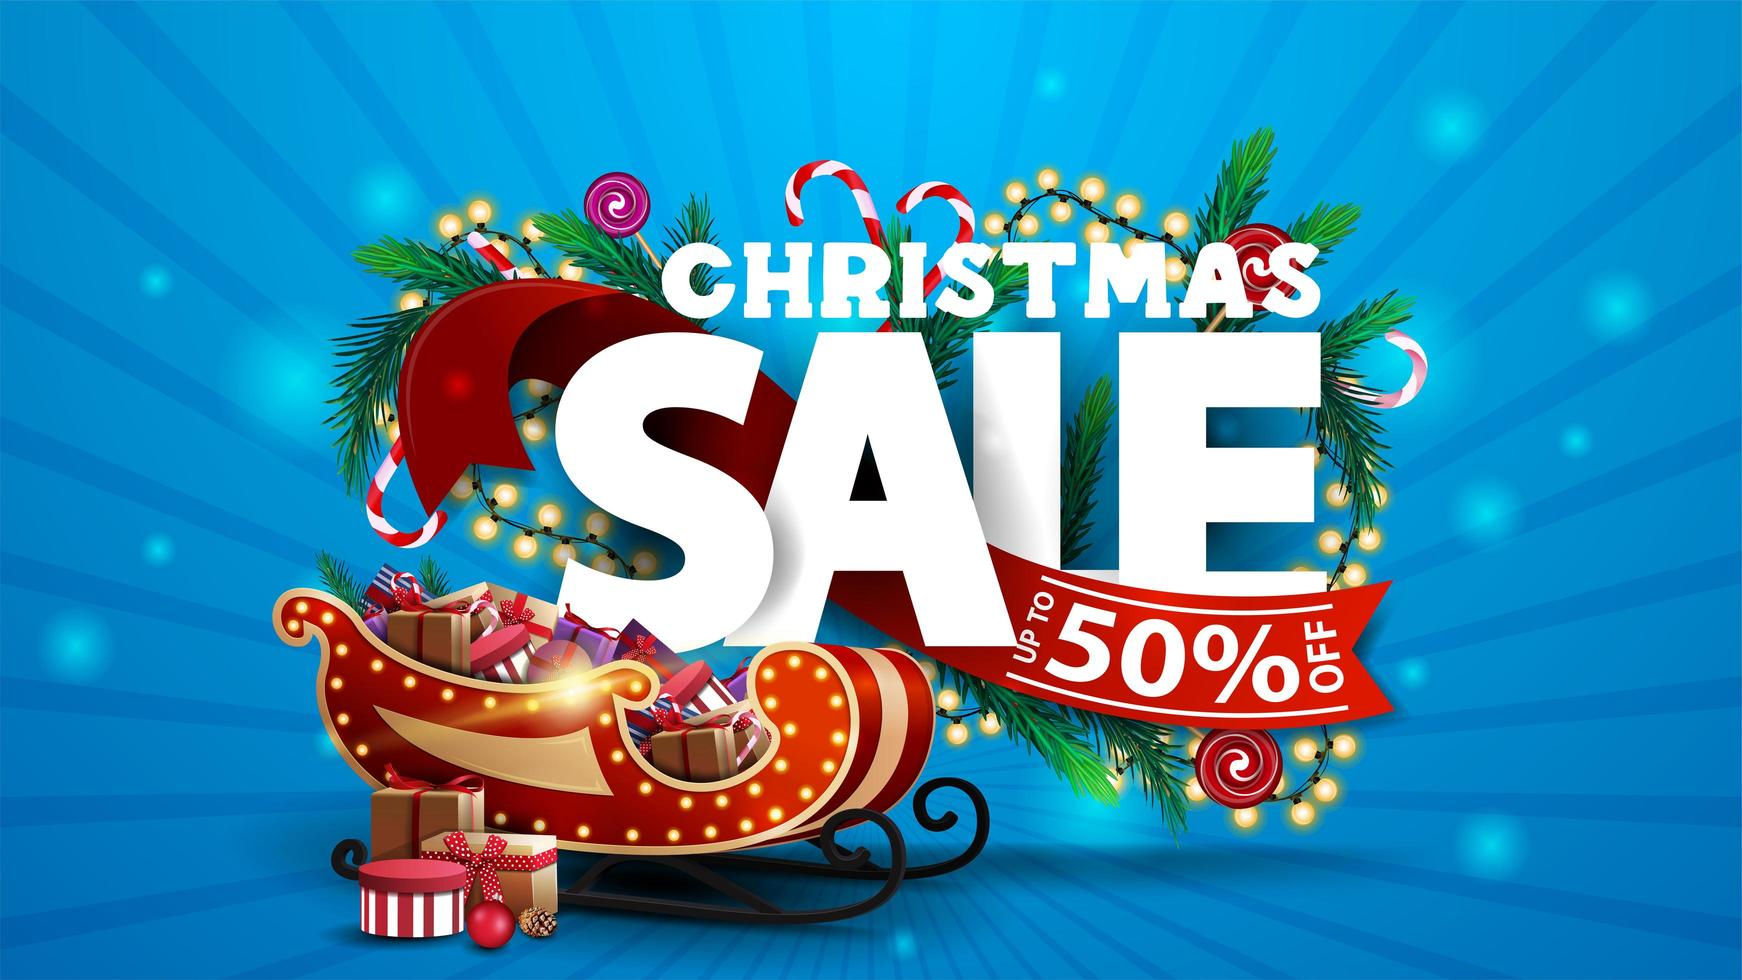 Christmas sale, blue discount banner with 3D text decorated of Christmas tree branches, candies and garlands. vector